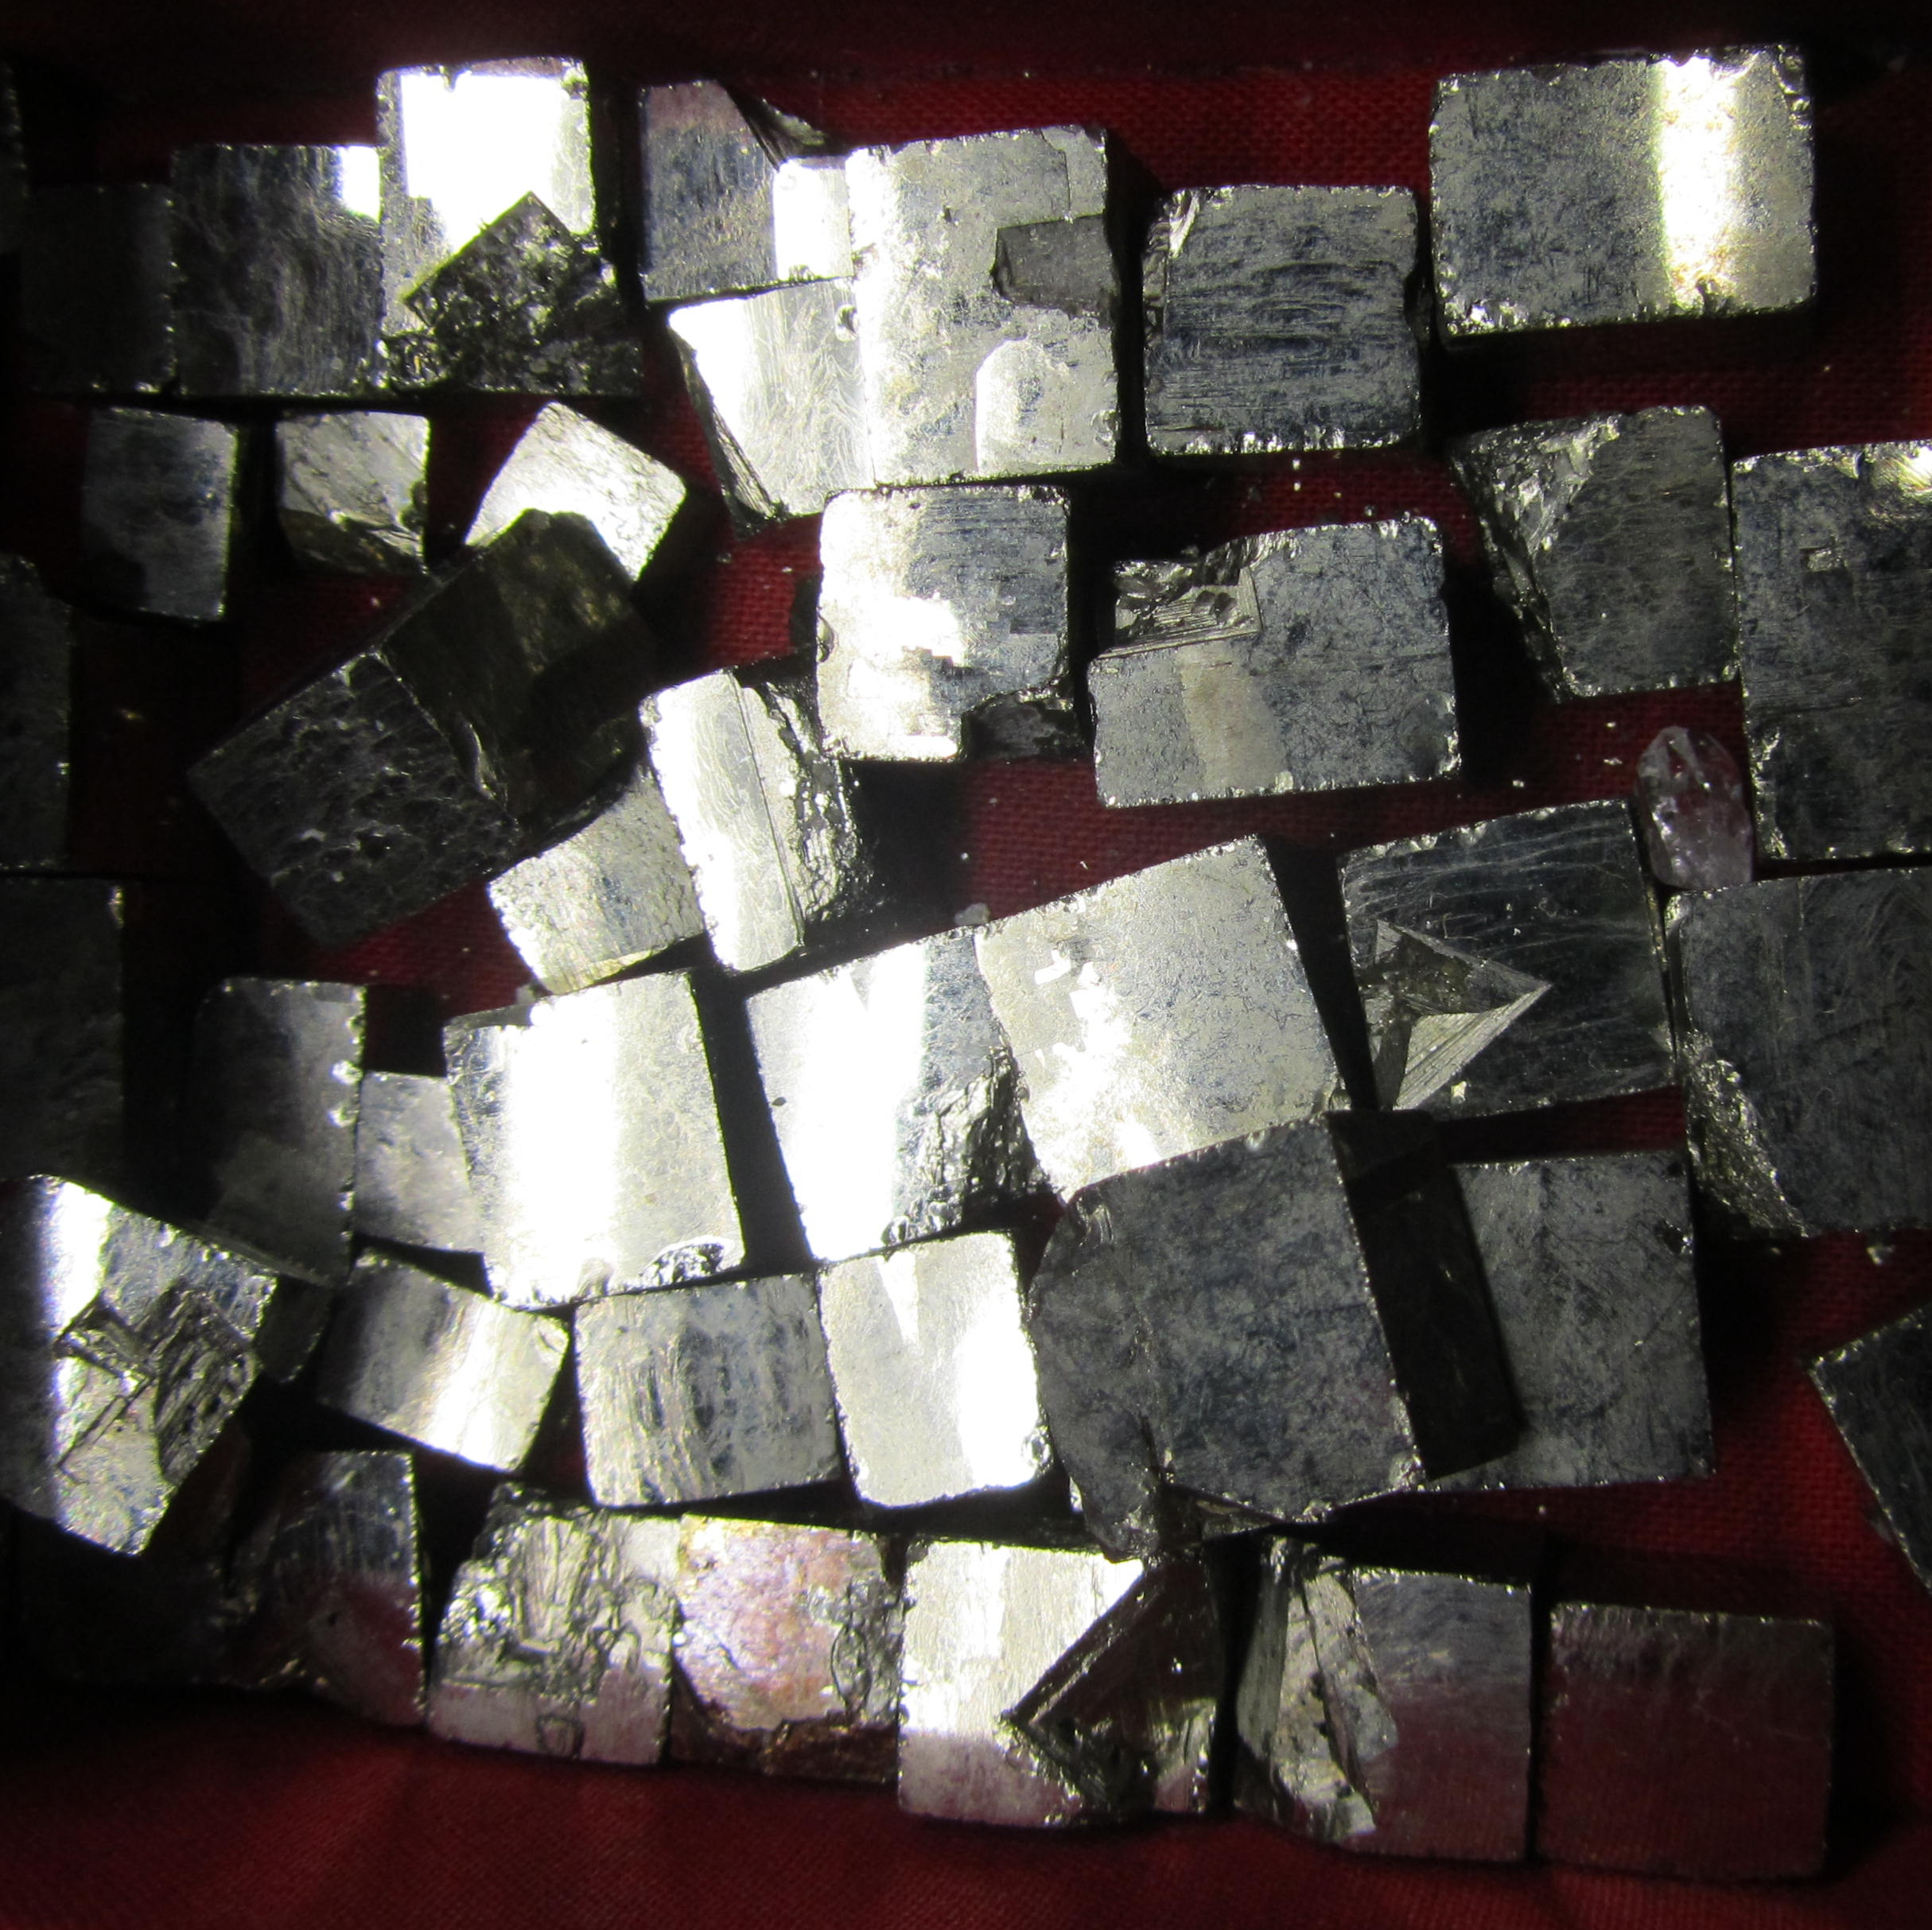 Box of pyrite specimens: A cube of cubes...